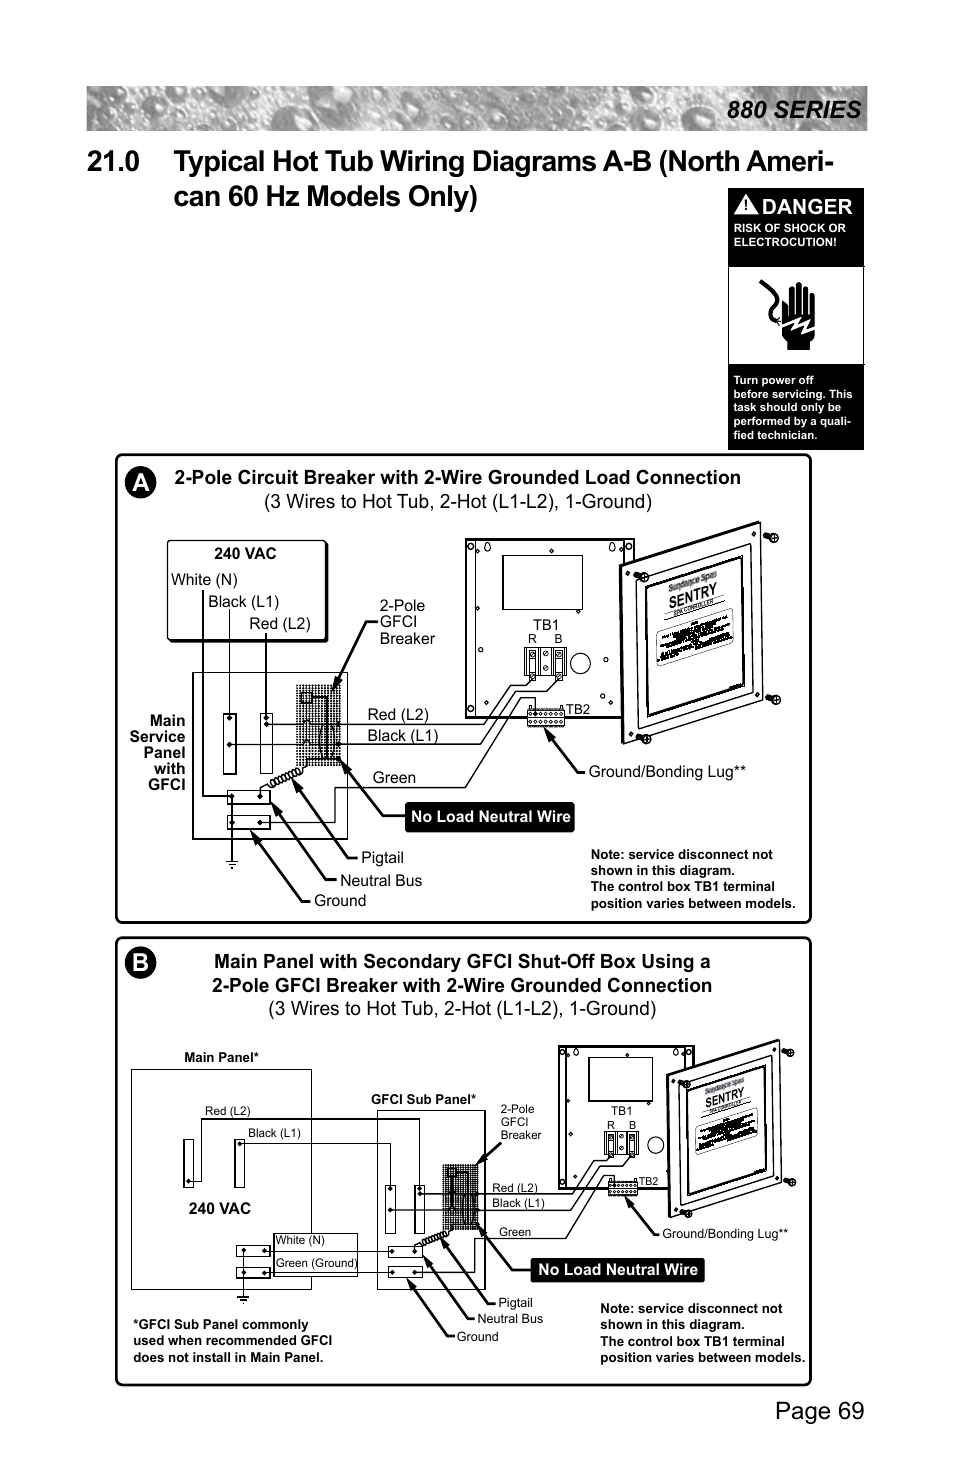 0 typical hot tub wiring diagrams a-b, north american 60 hz models only),  danger | sundance spas altamar 880 user manual | page 75 / 92